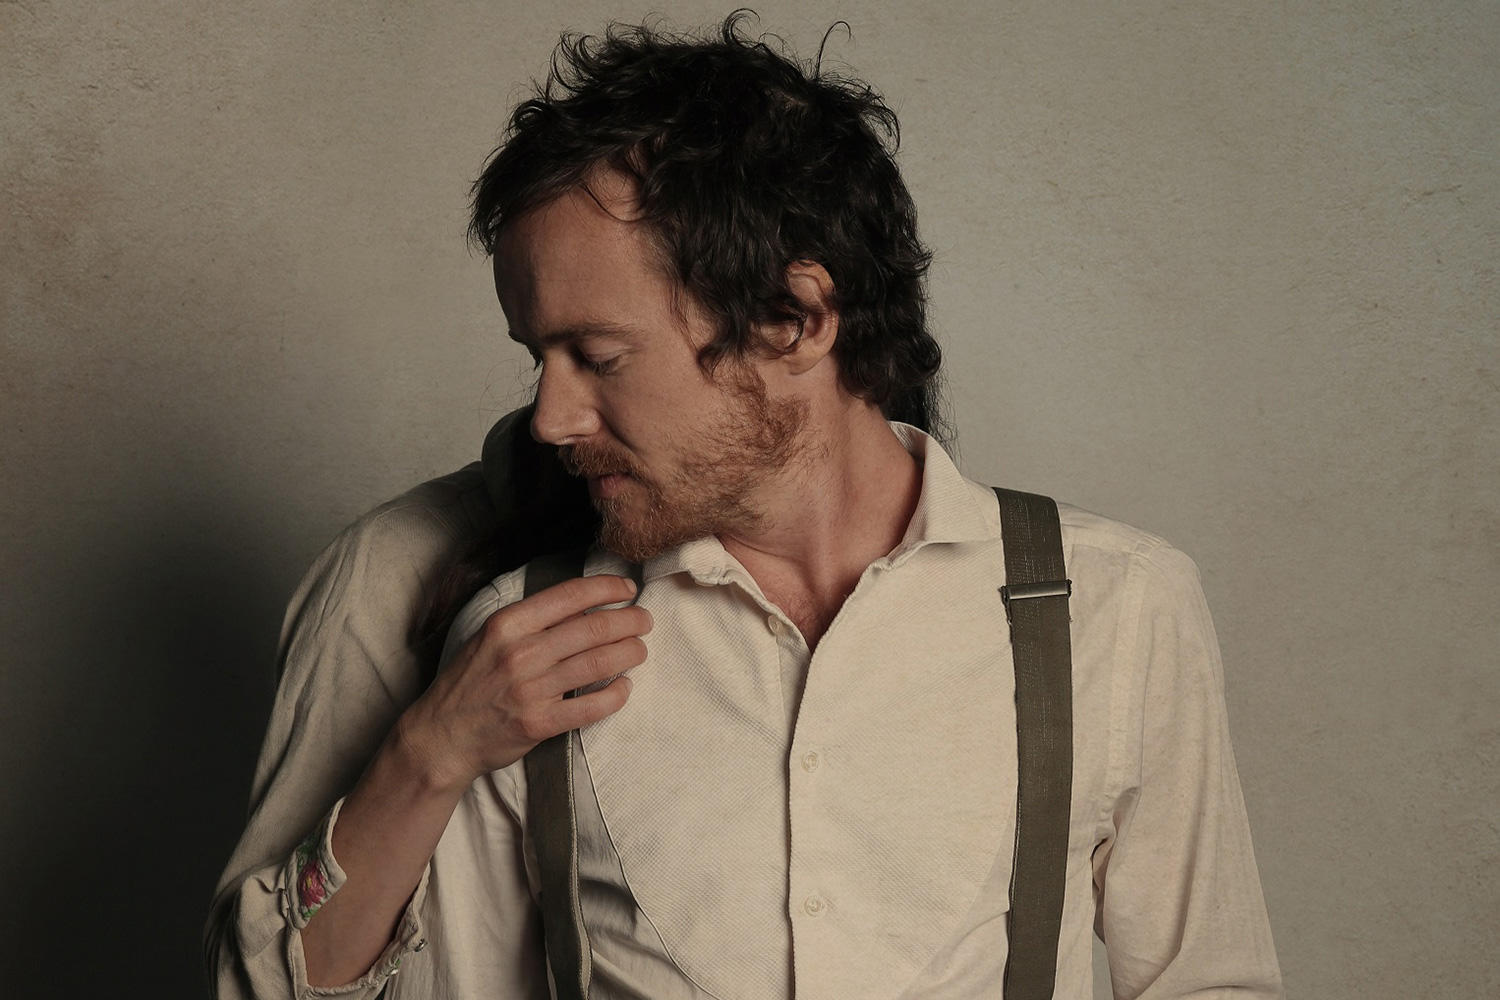 Damien Rice announces additional 2015 dates